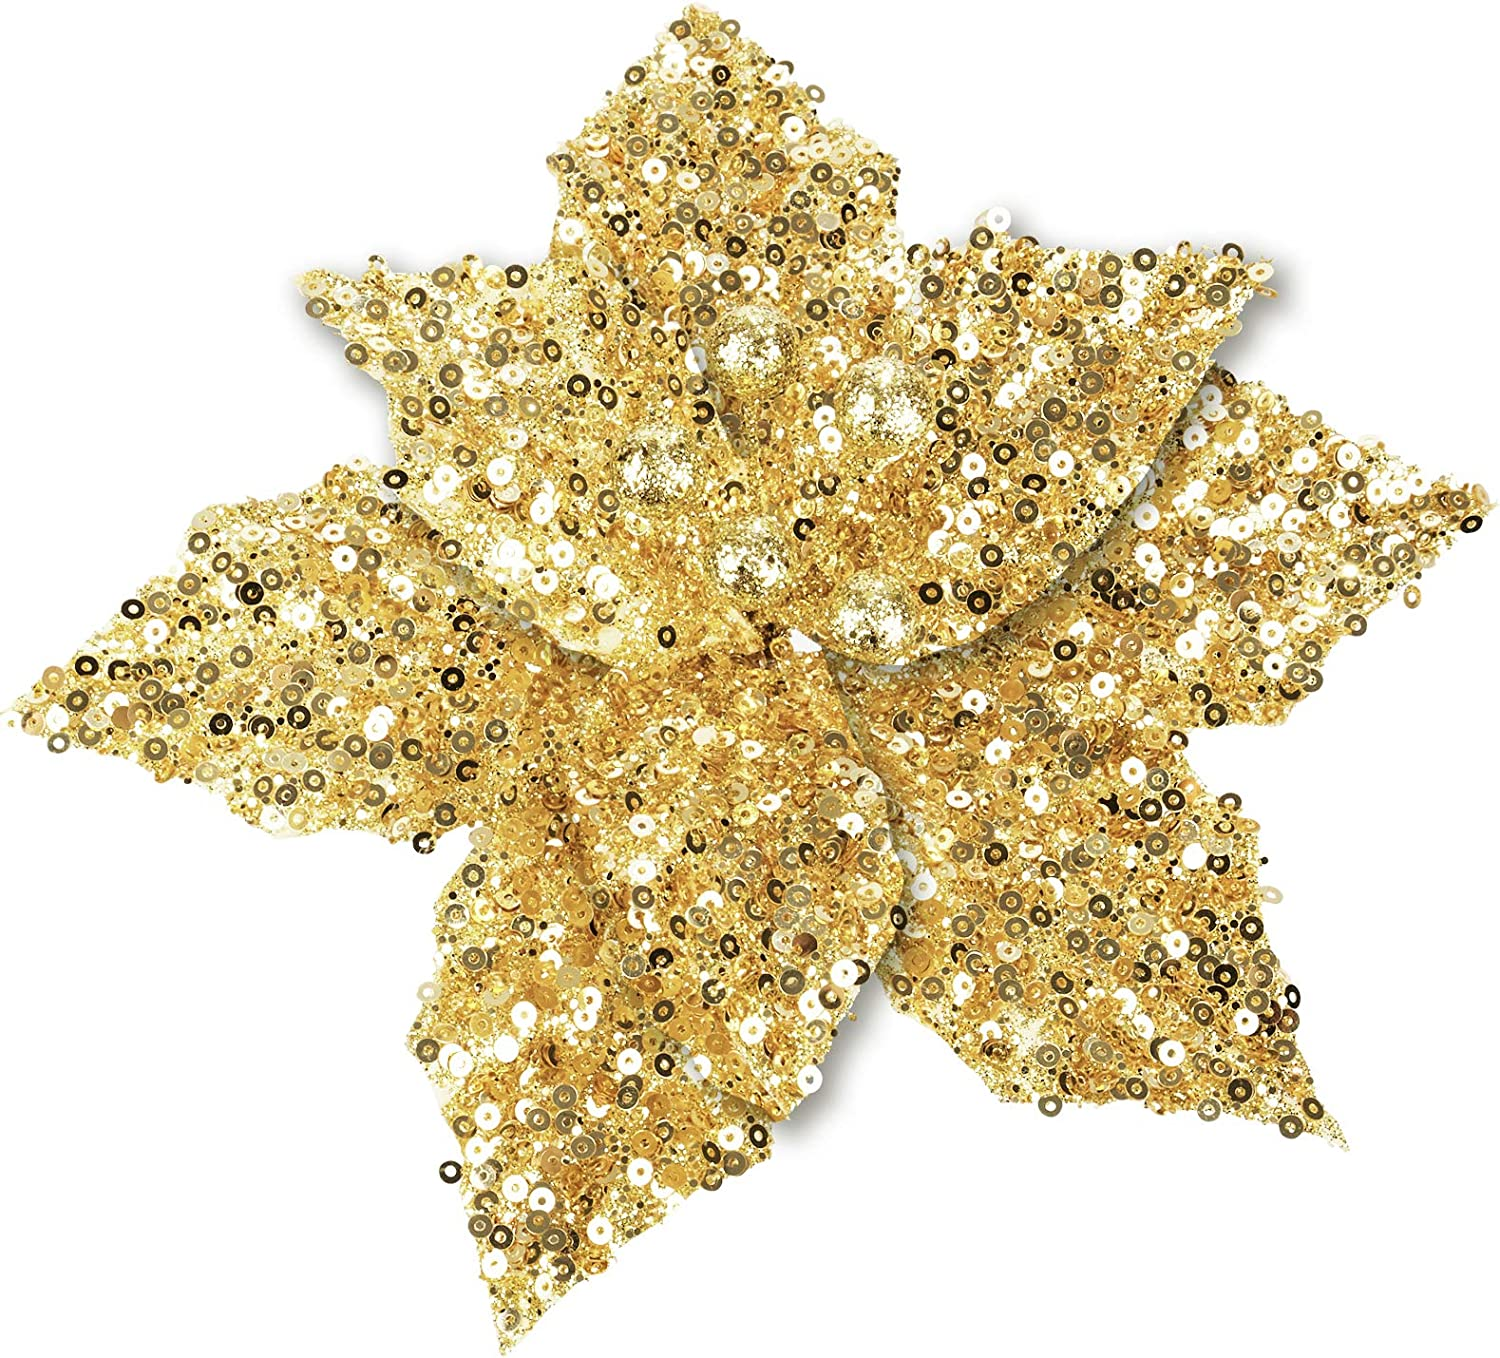 FUNARTY 12-Pack Glitter Poinsettia Christmas Tree Ornaments Artificial Christmas Flowers for Christmas Tree Wreaths Garland Holiday Decorations, 6.7-Inch (Gold)